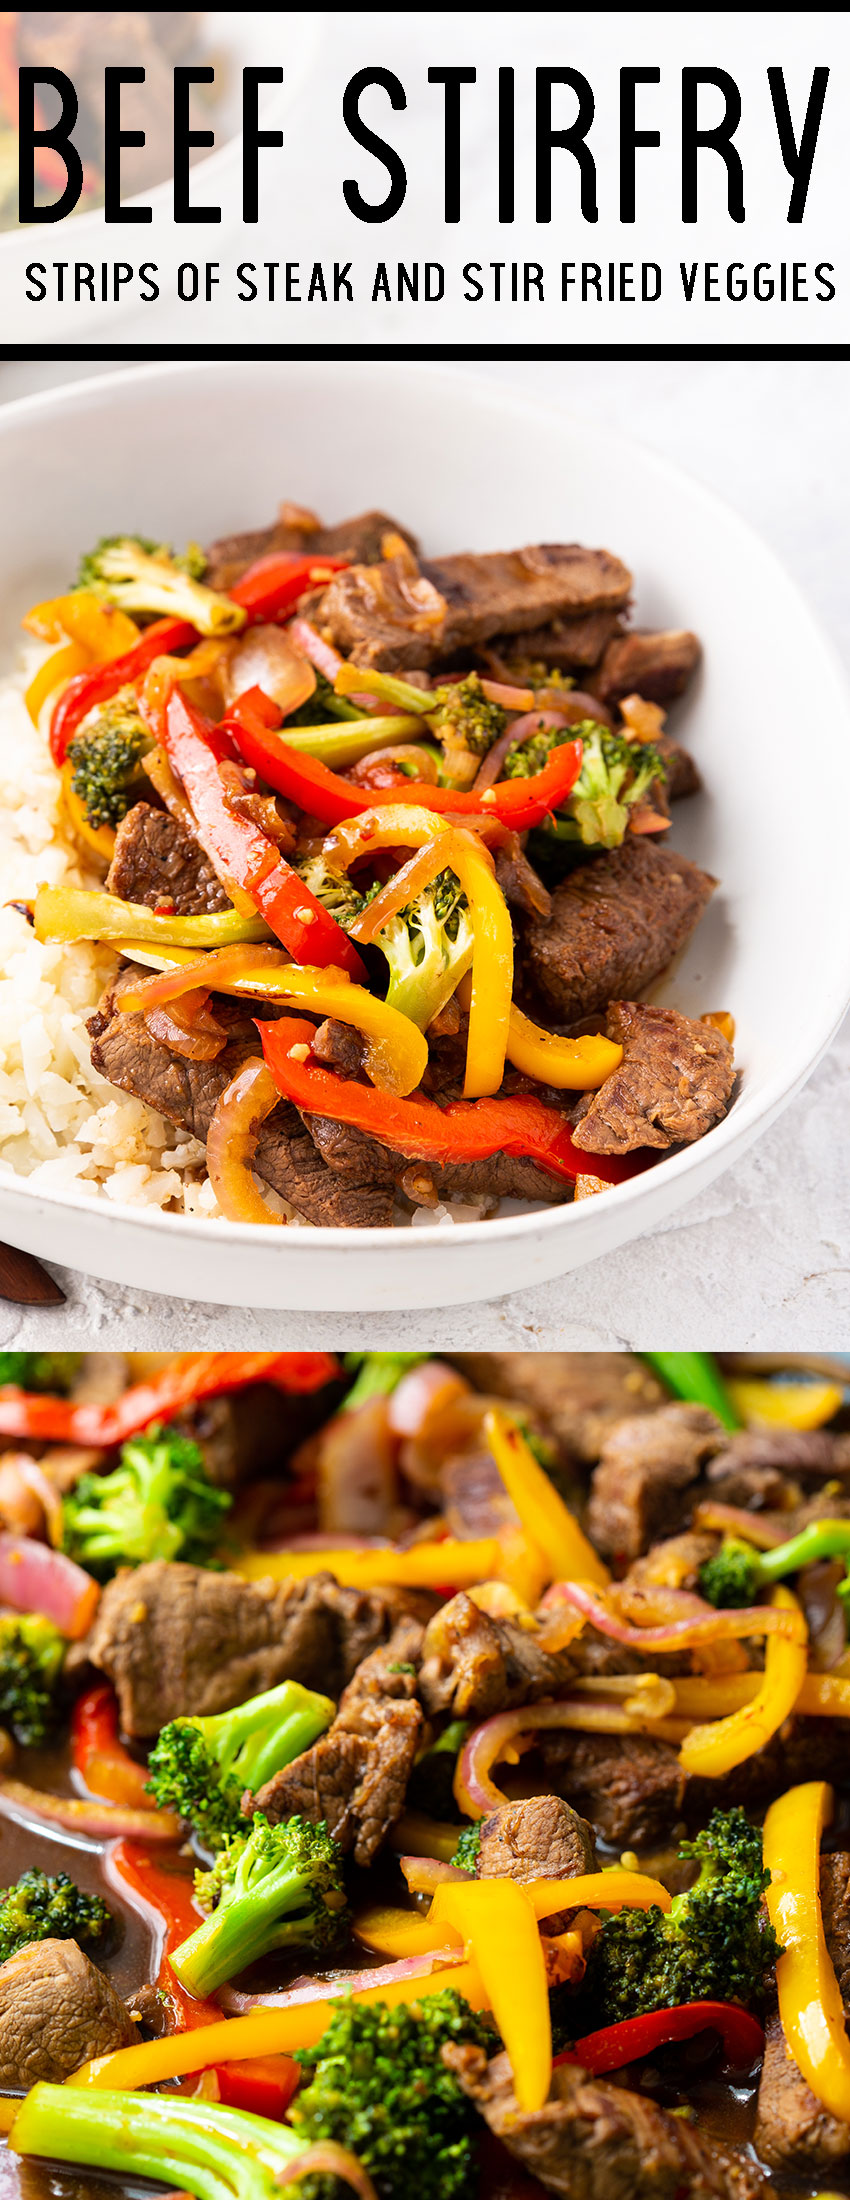 Beef stir fry in a skillet and in a white bowl